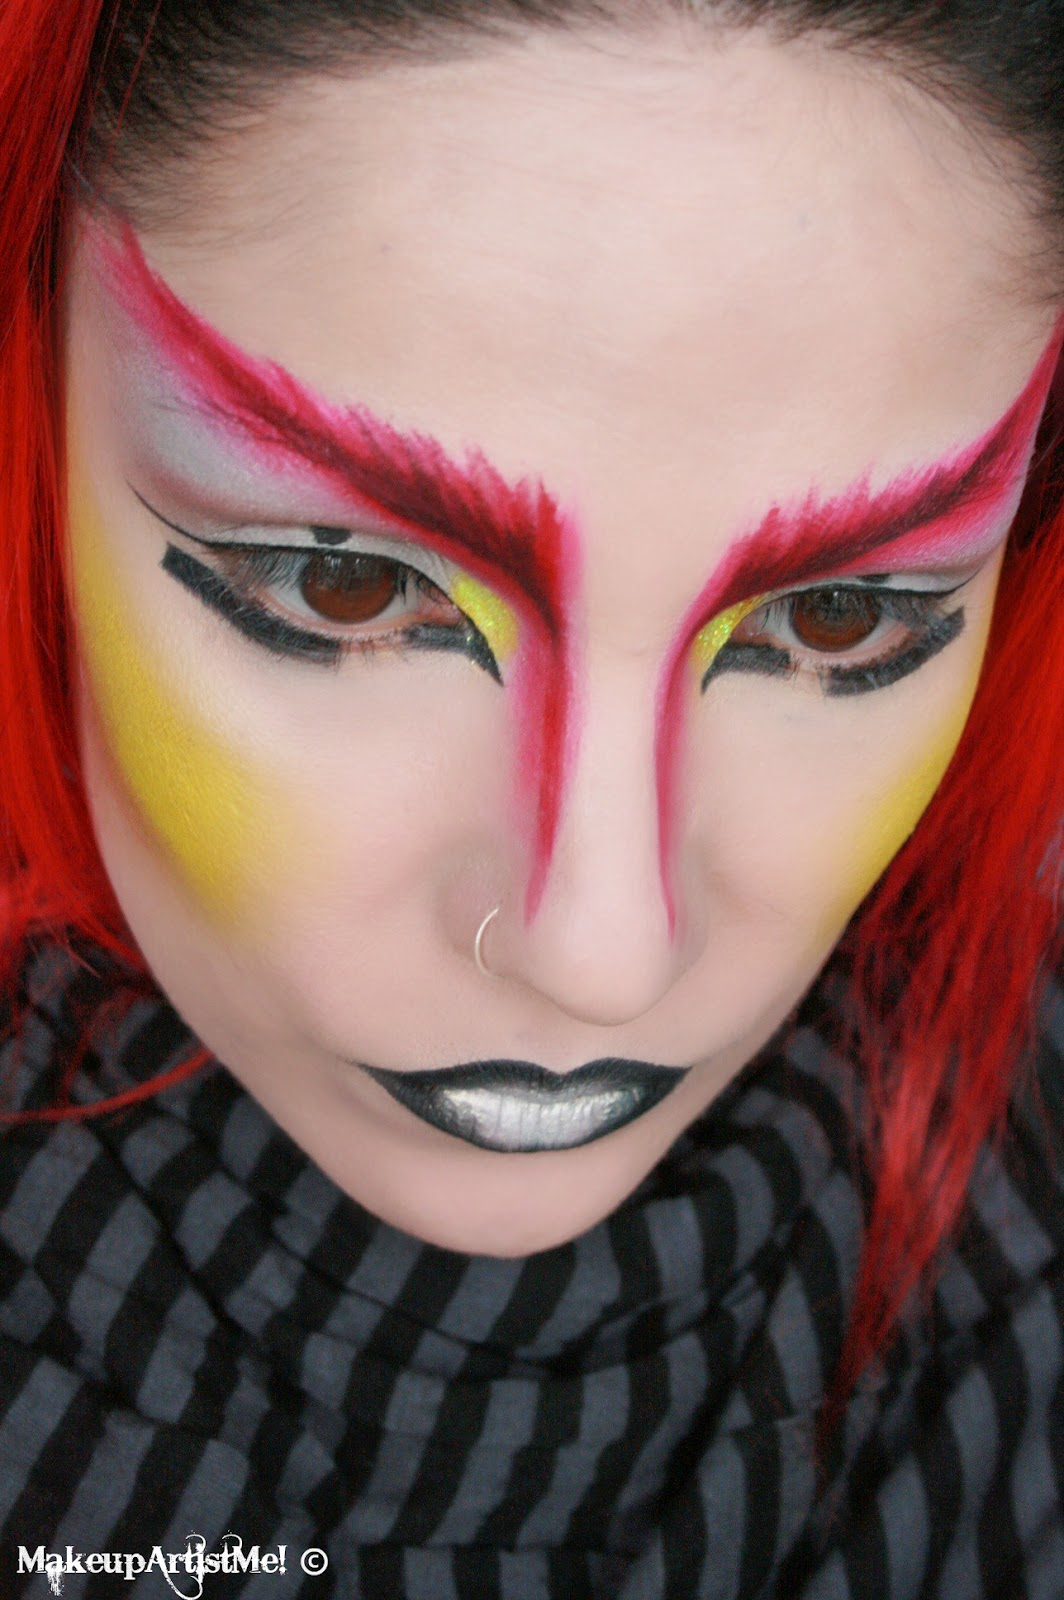 Make Up Tutorial For Girls: Make-up Artist Me!: Warrior -- An Artistic Makeup Look